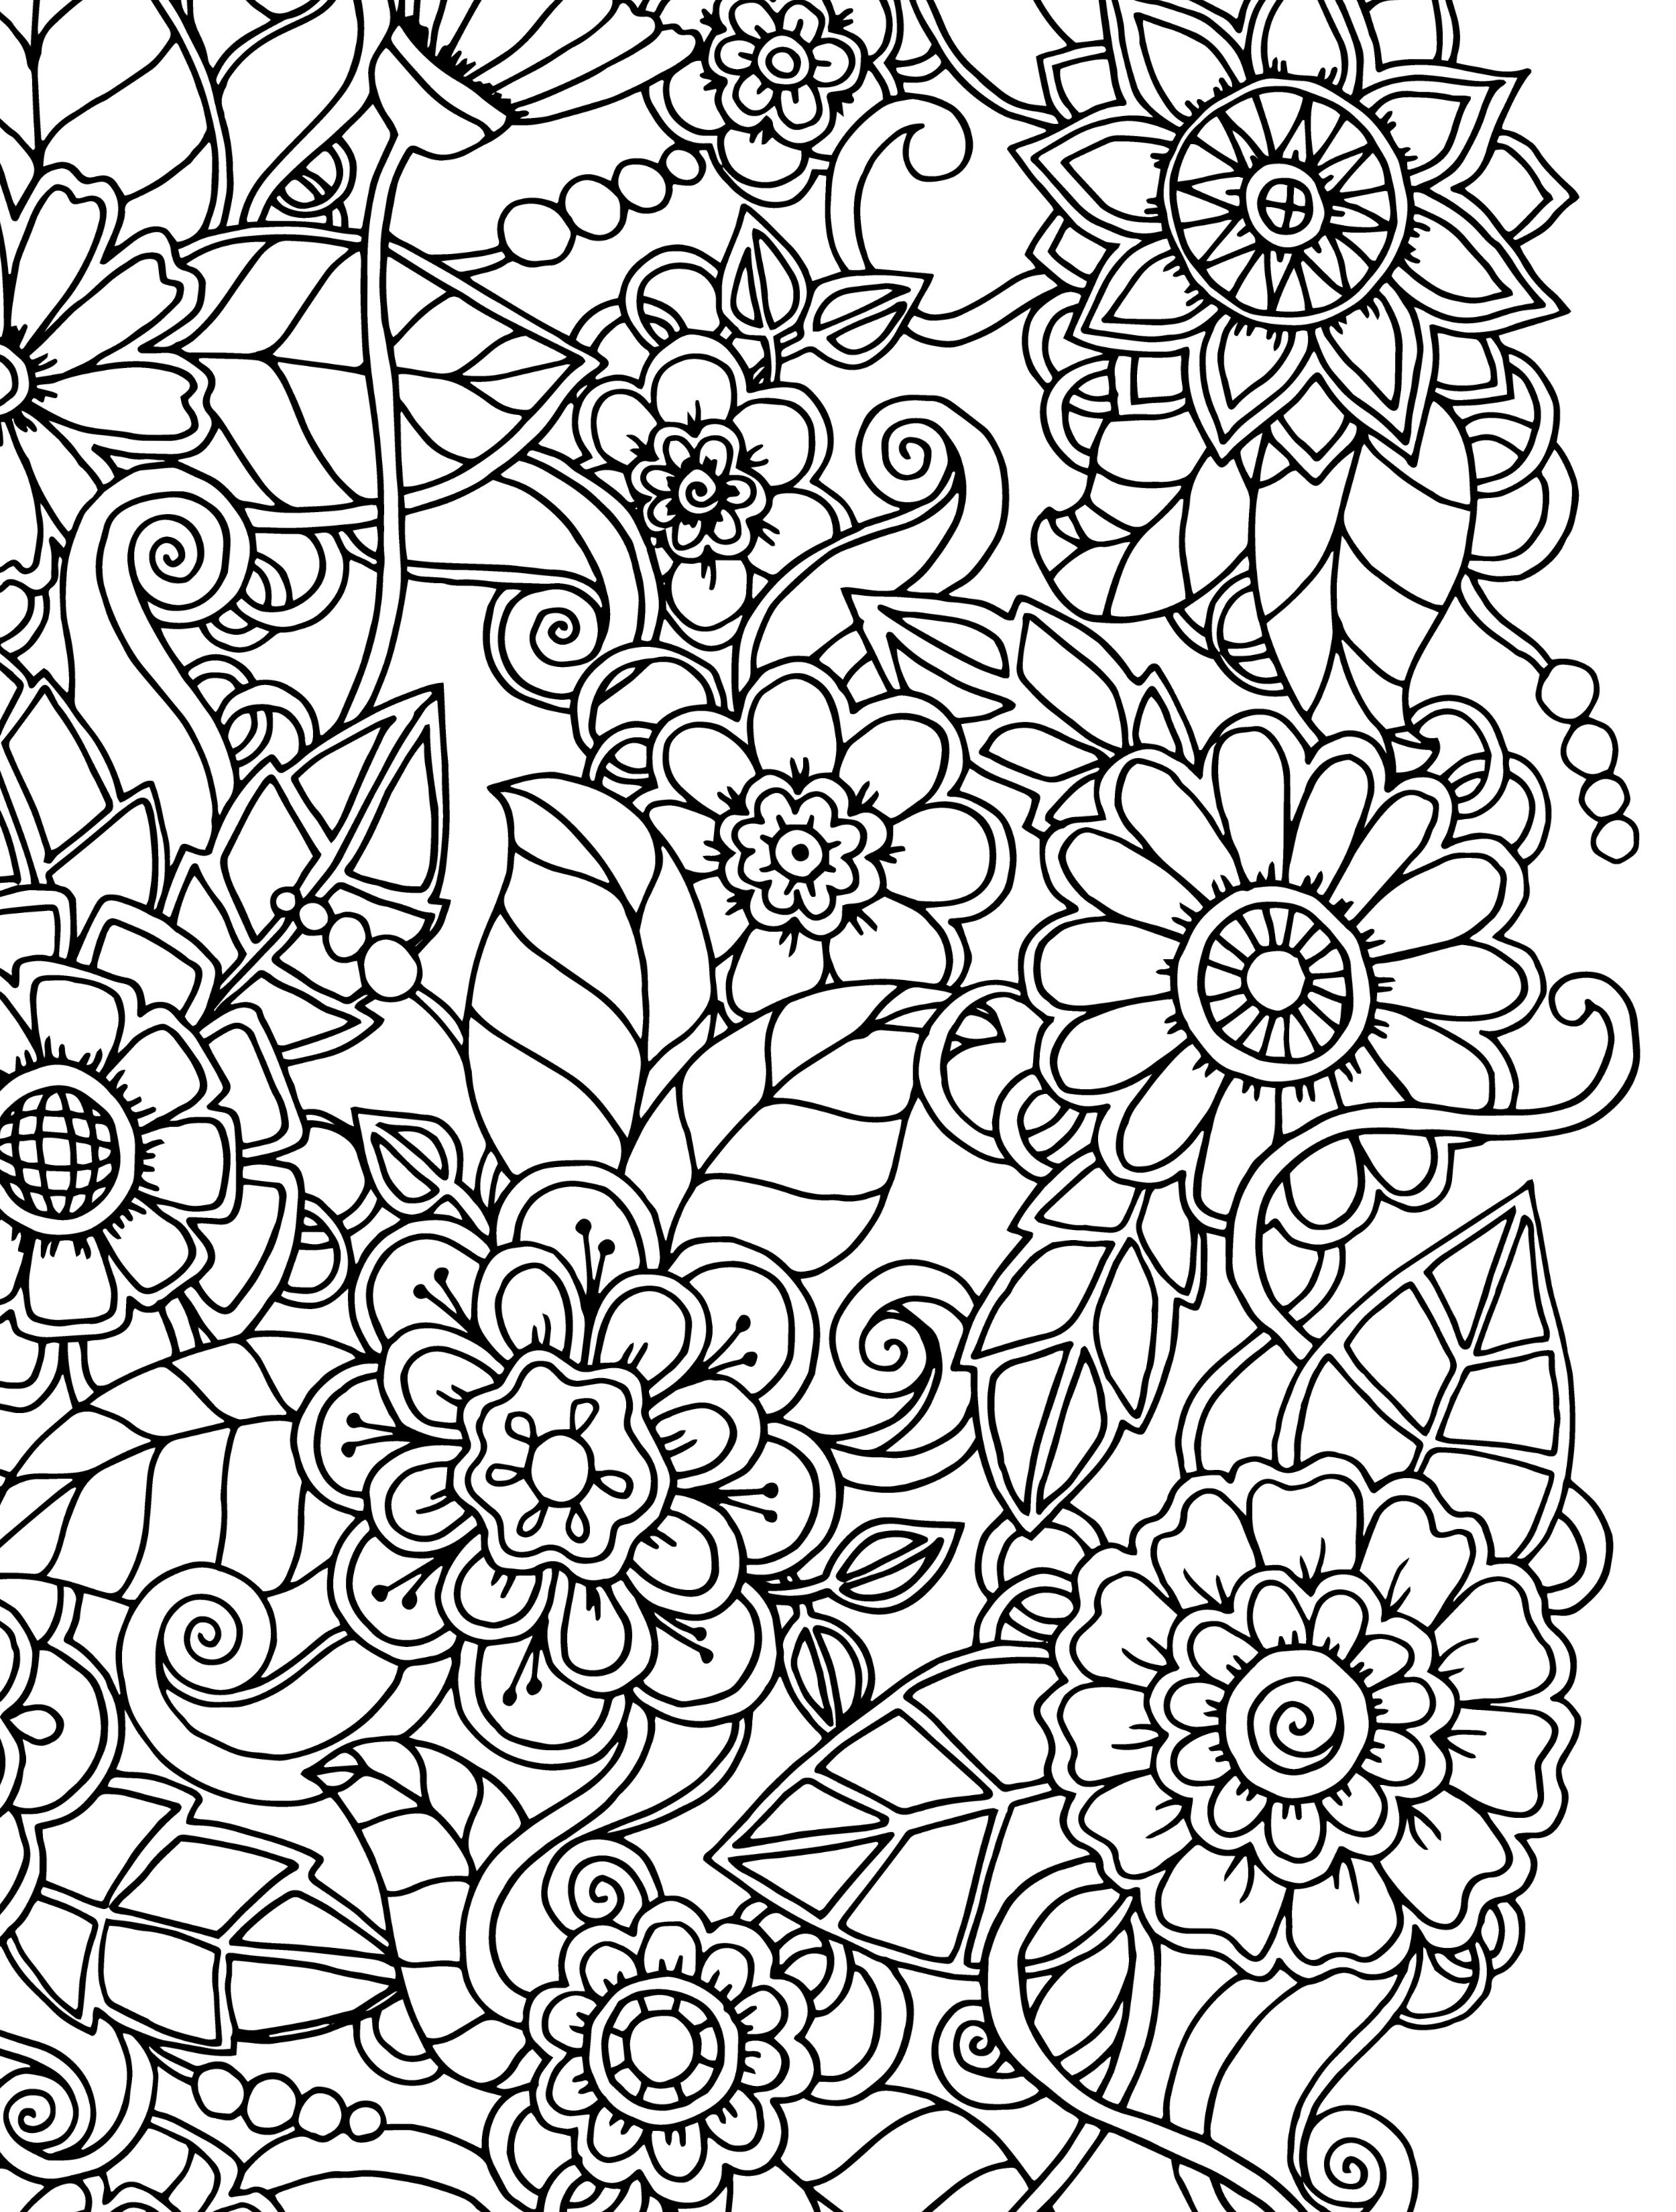 Colorings for seniors elderly with dementia adult coloring for Free coloring pages for adults with dementia